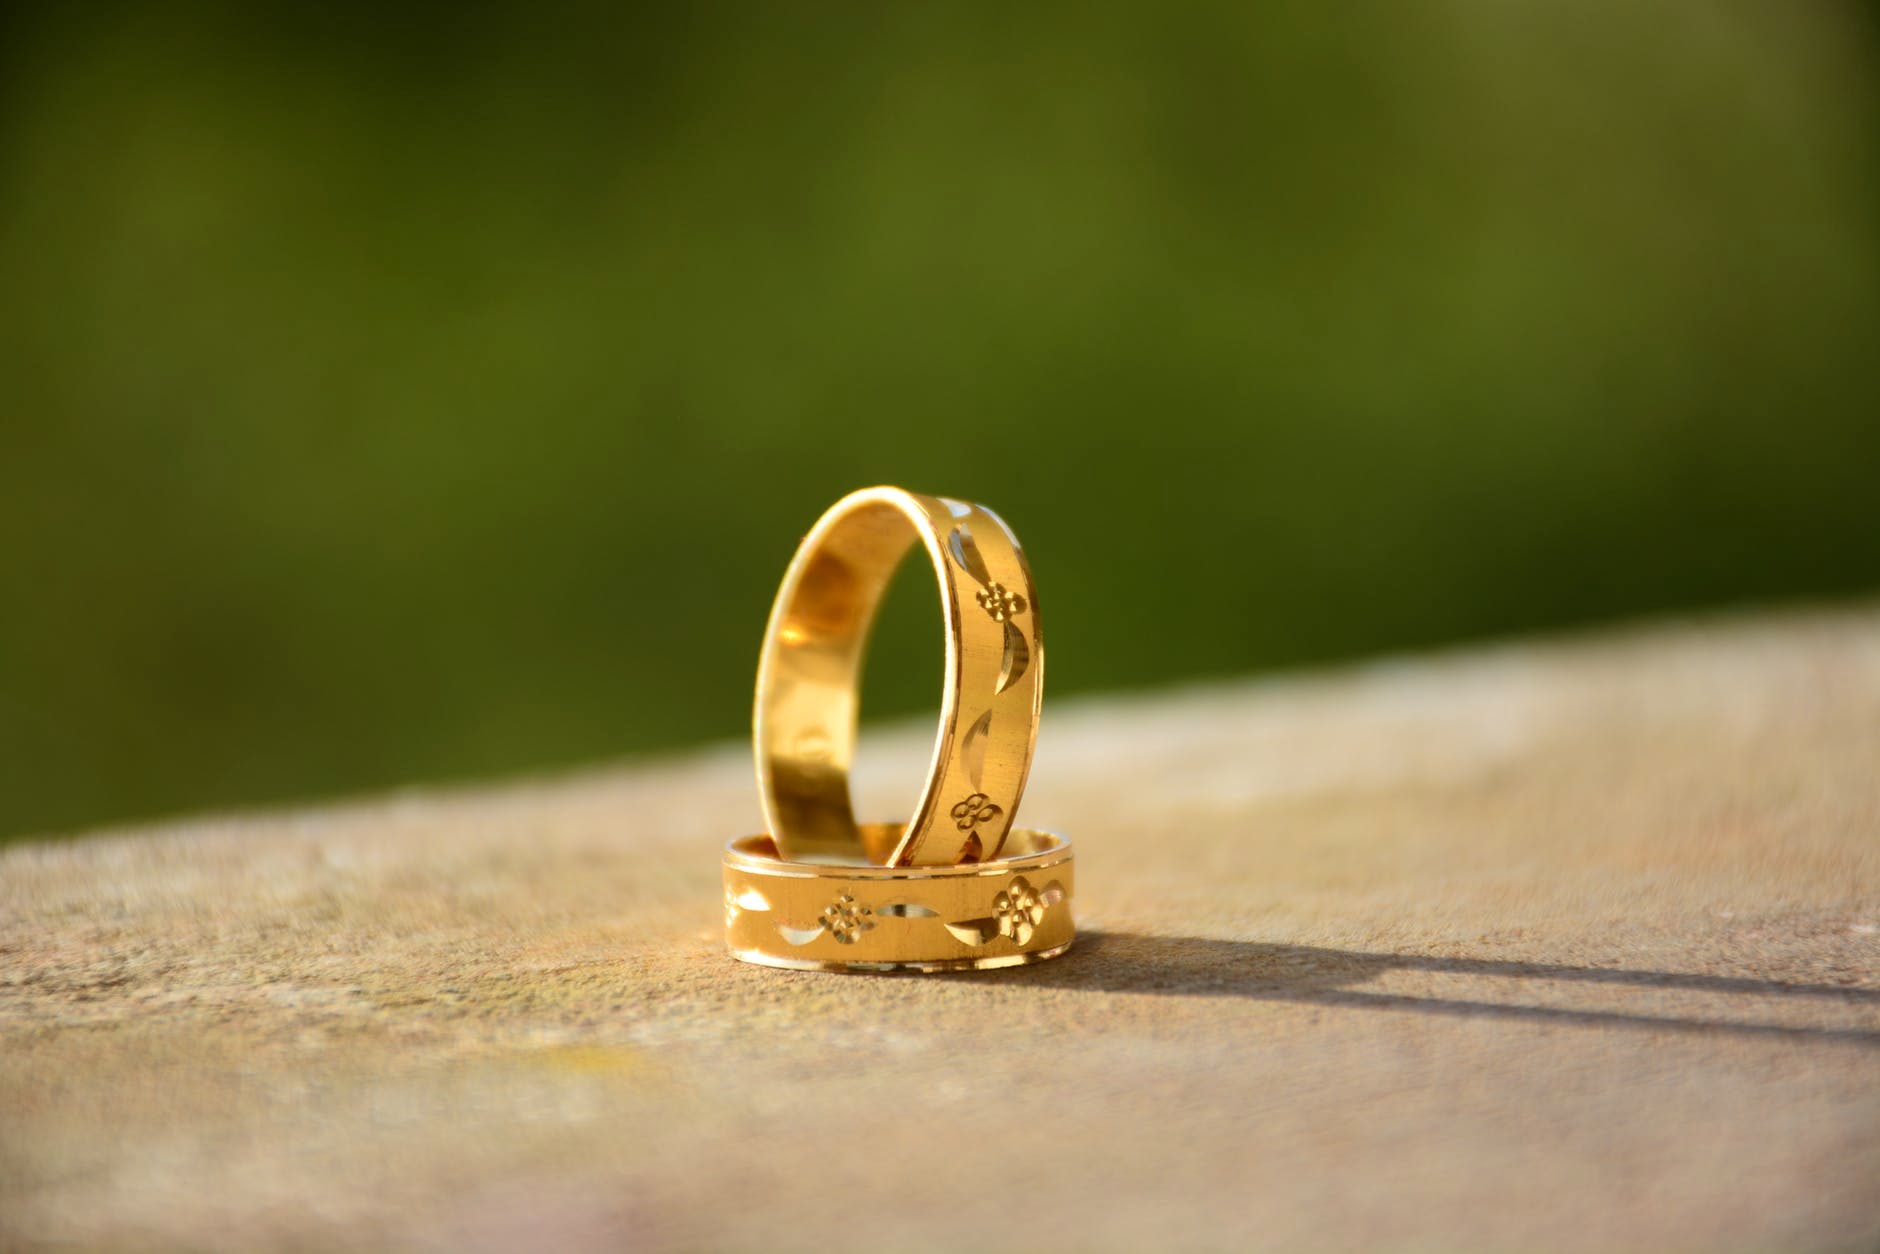 Ring,Yellow,Wedding ring,Fashion accessory,Jewellery,Wedding ceremony supply,Gold,Metal,Macro photography,Finger